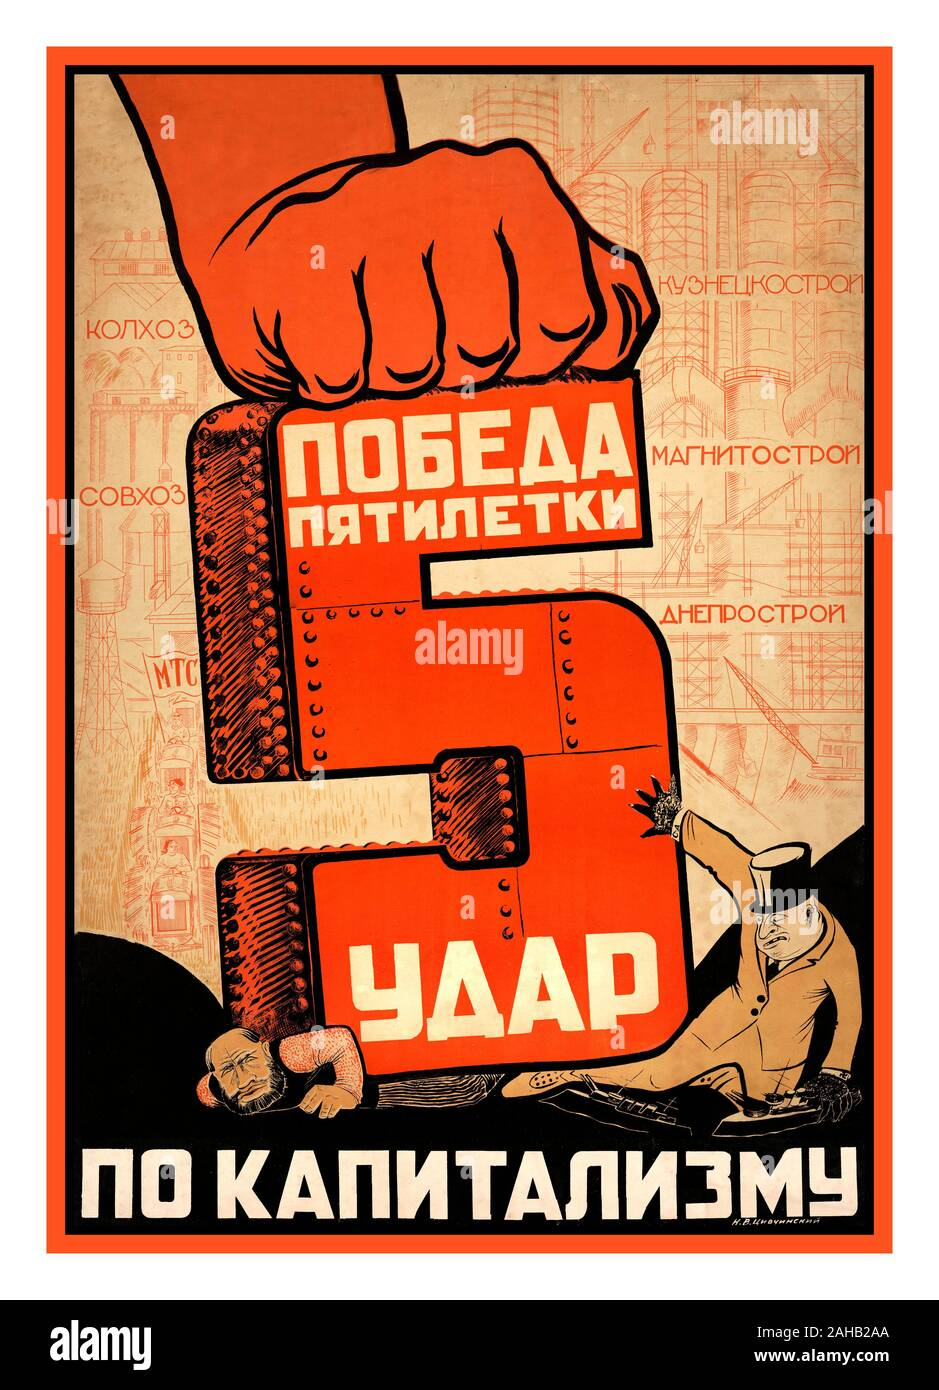 Smite The Lazy Worker Vintage Russian Propaganda Poster